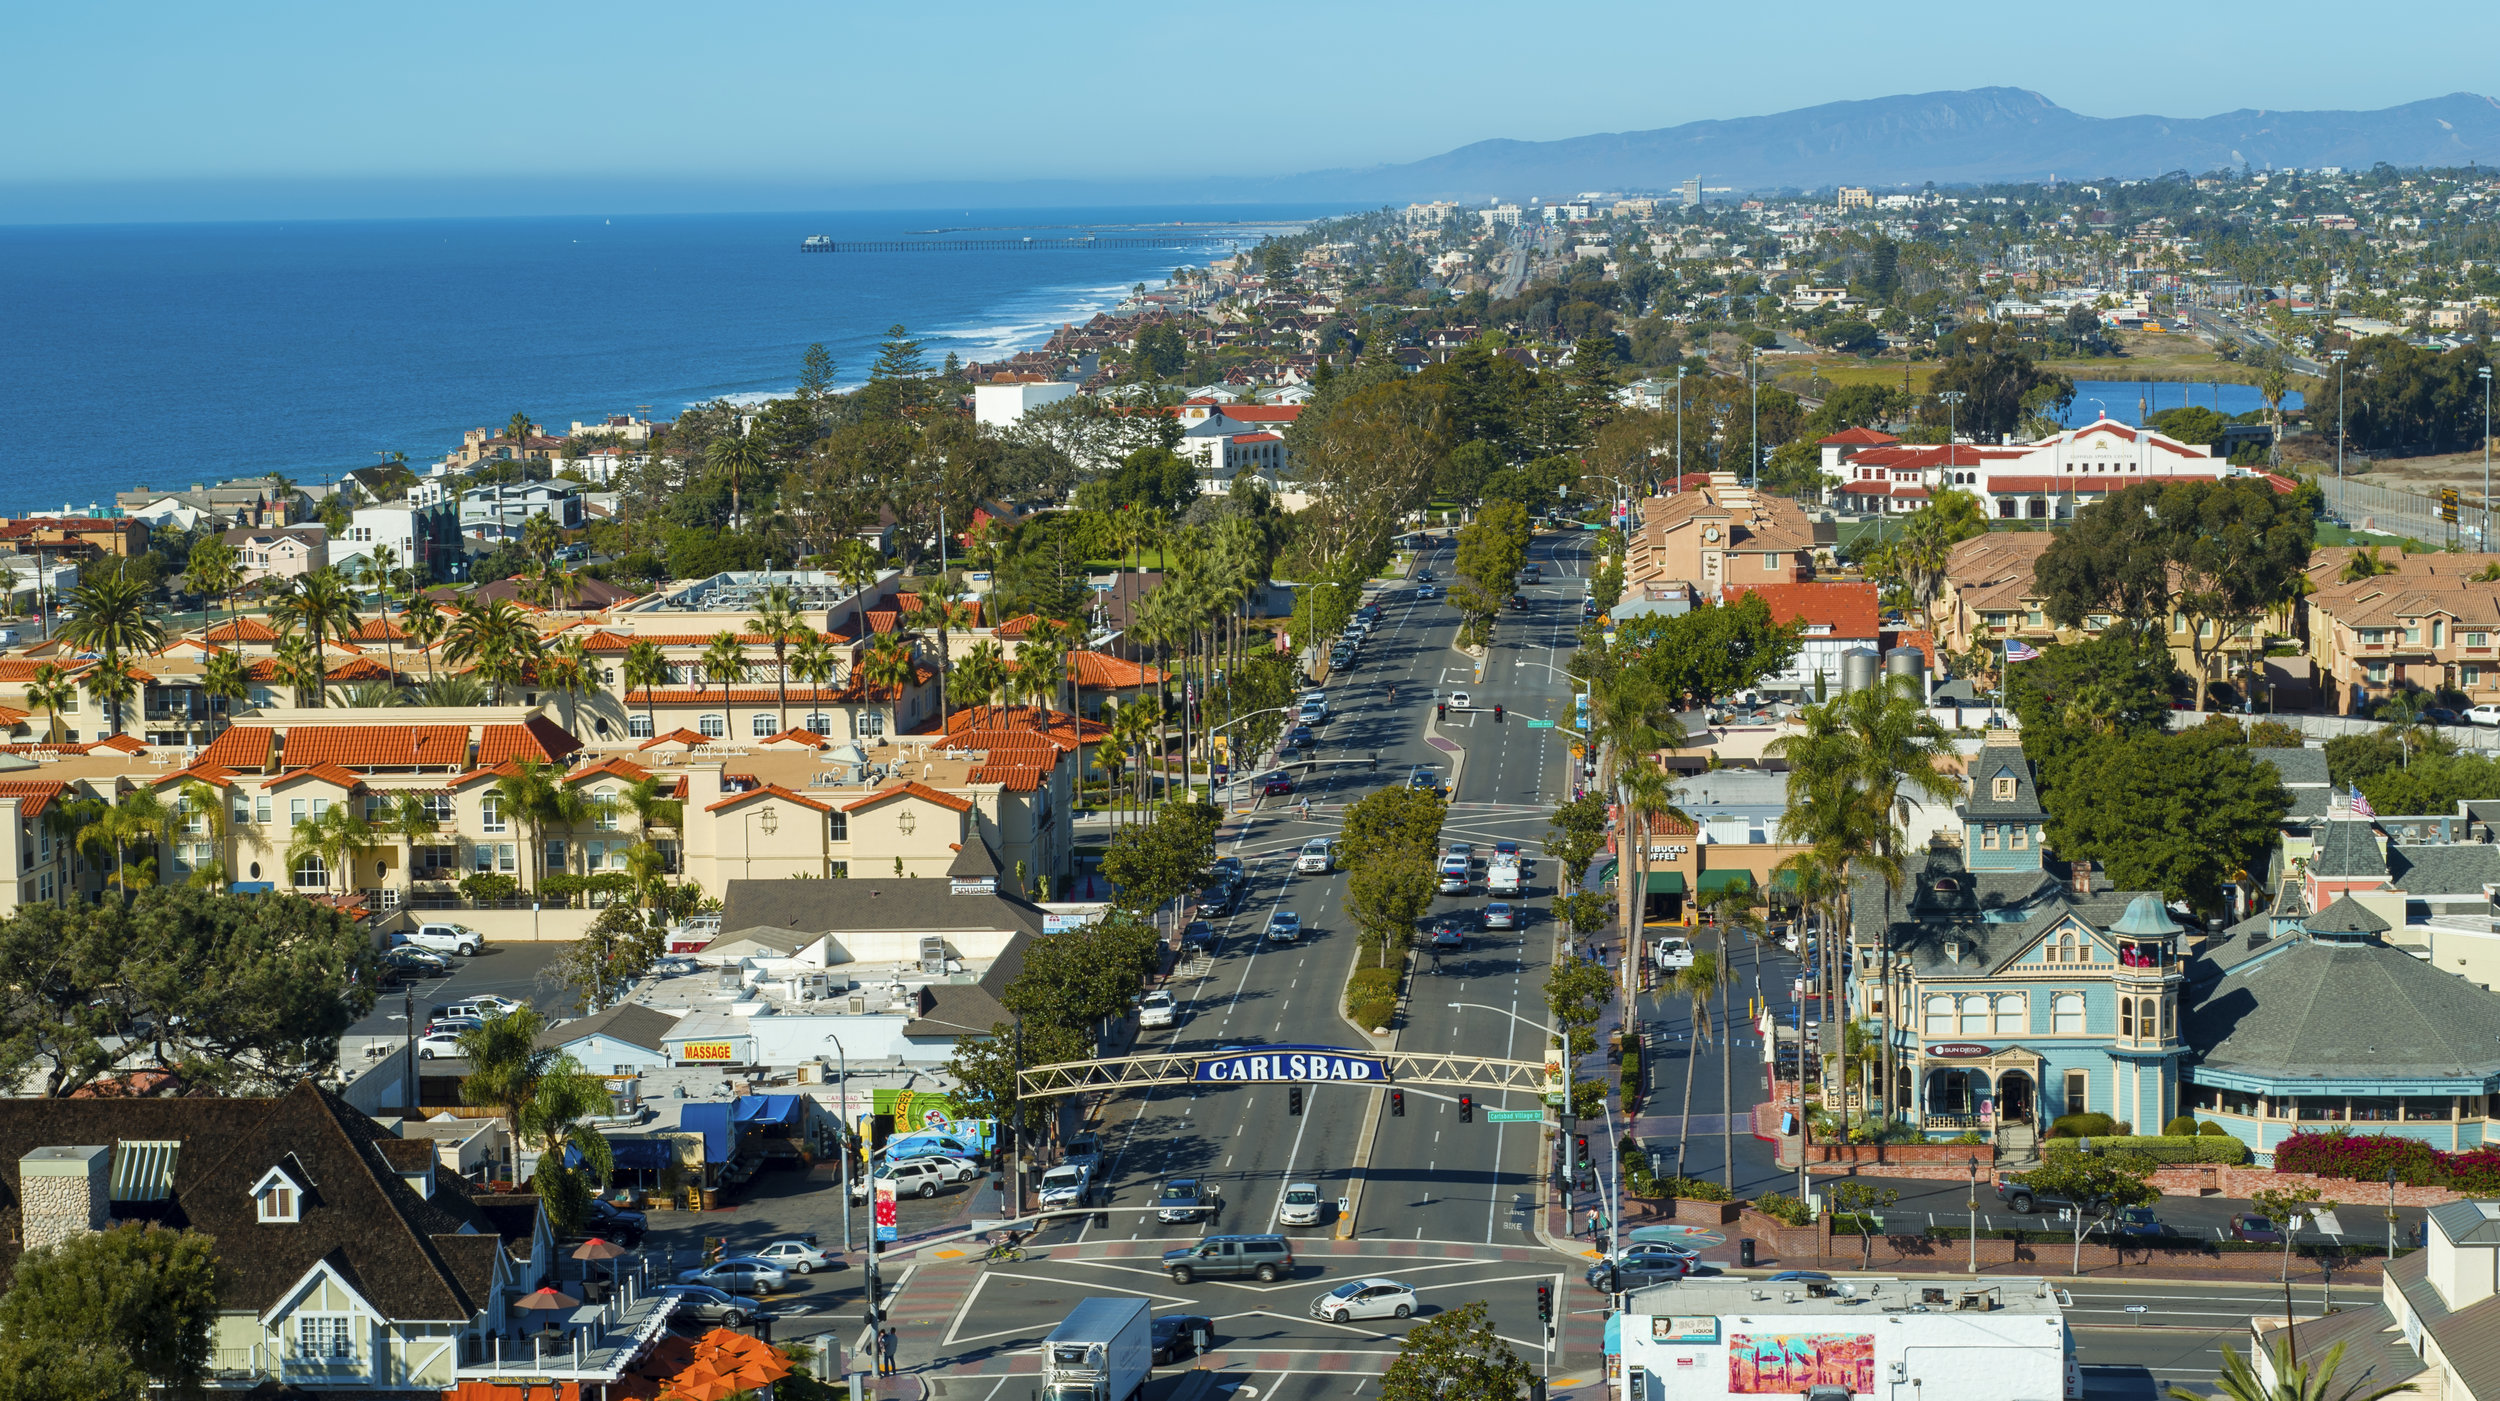 Aerial drone photo of Carlsbad Village